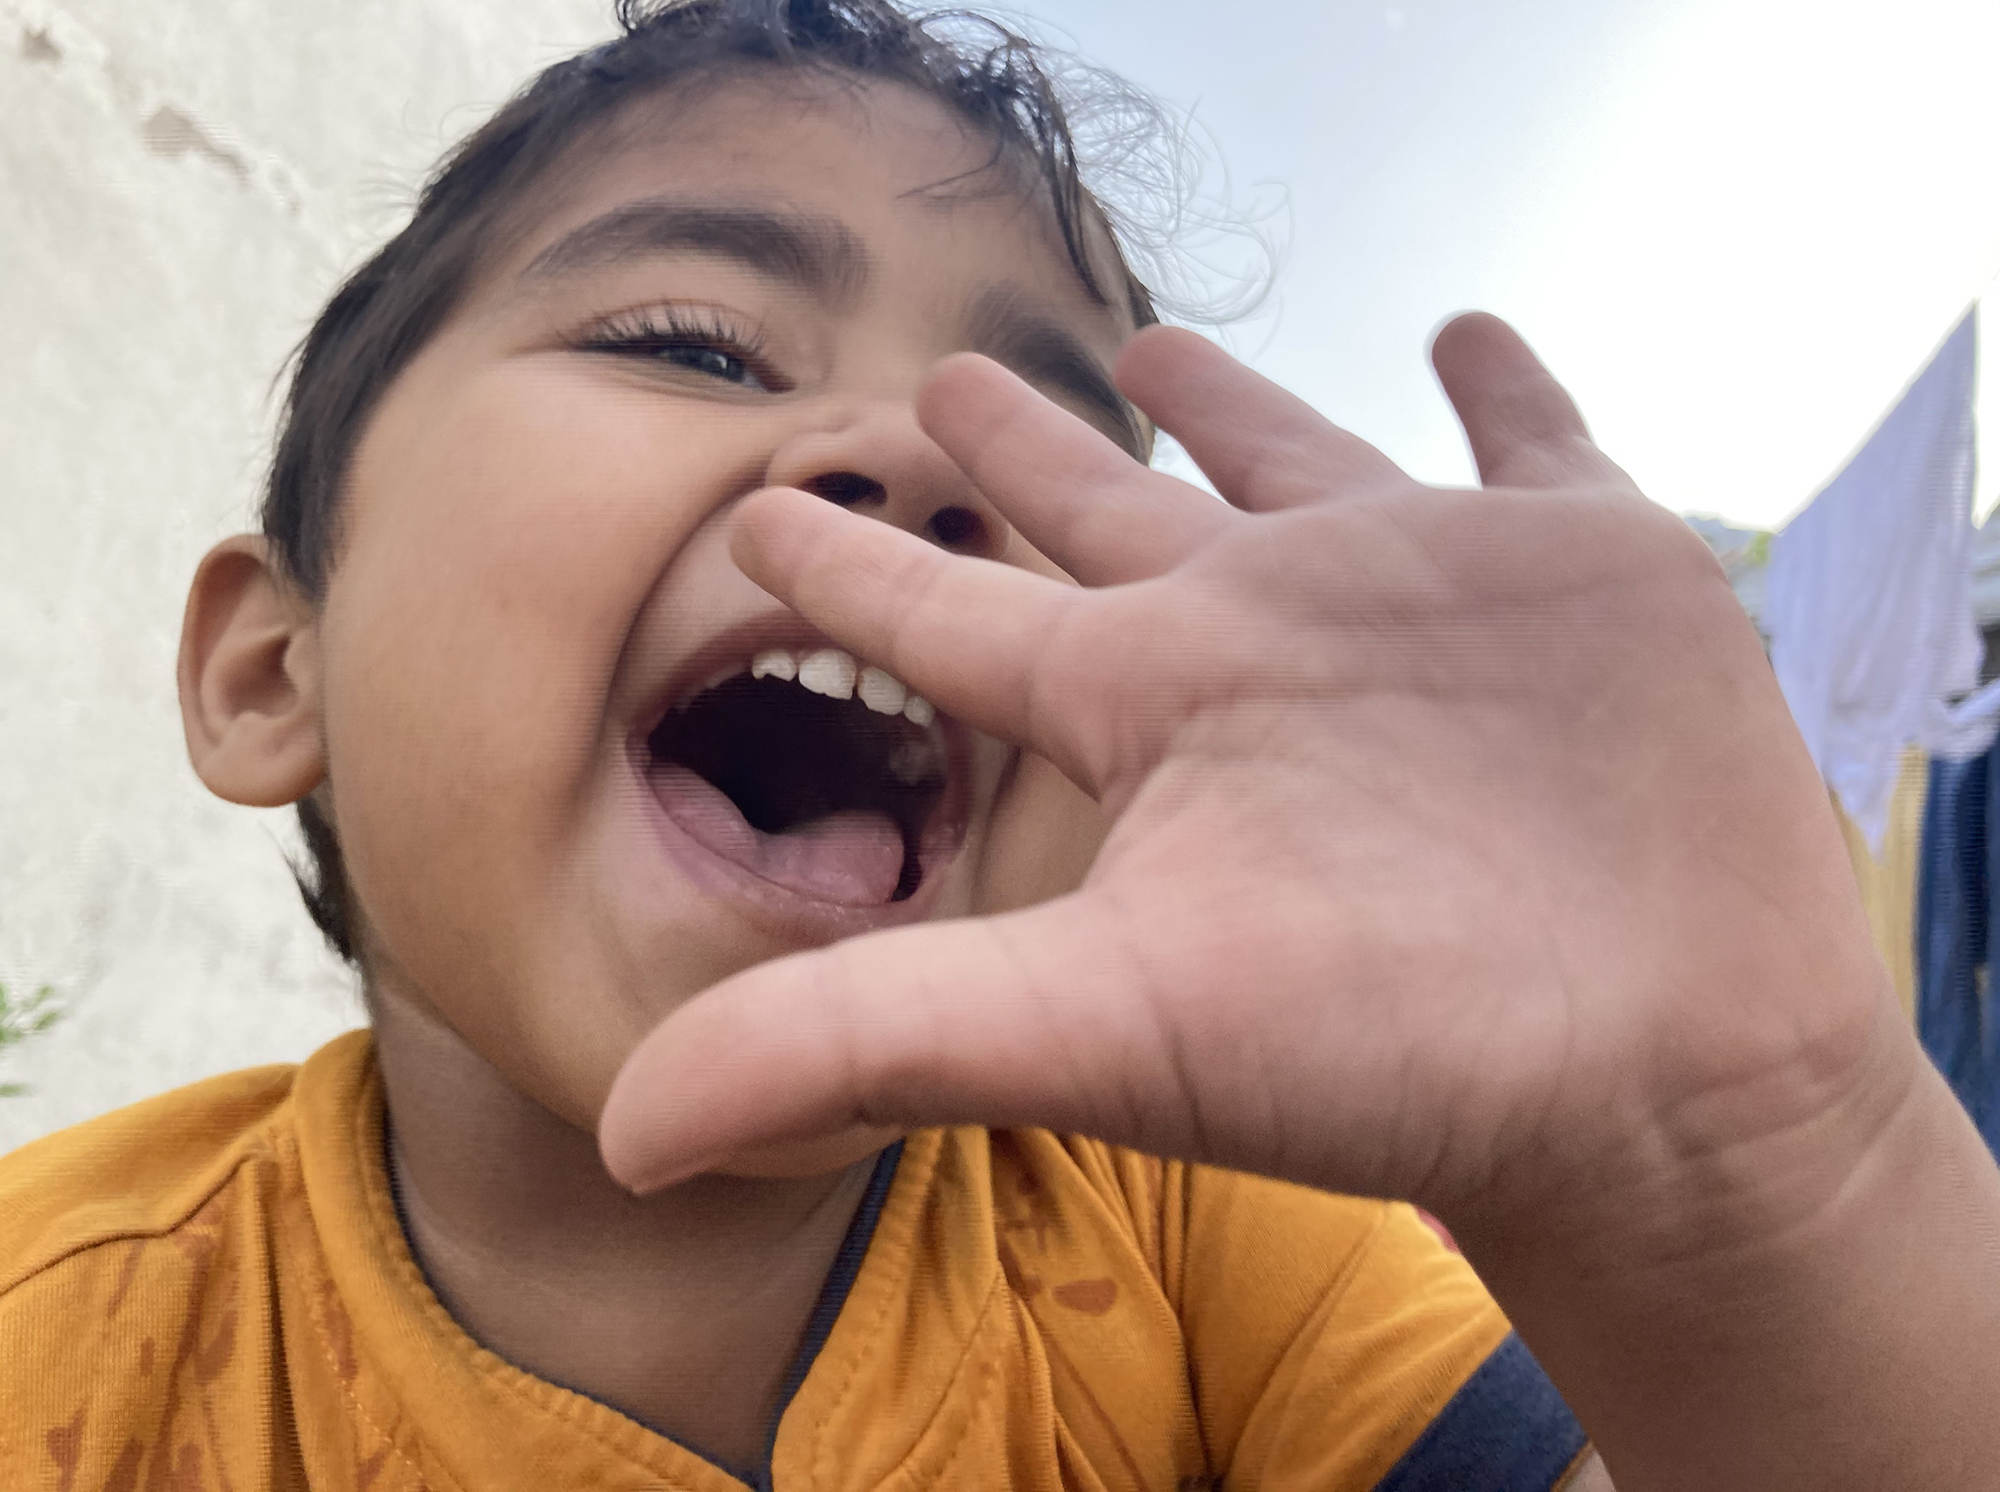 My nephew playing and making noise around. I took this photo when came near me and making different sounds. The wide-angle lens of the phone camera made this image more three dimensional and made it dynamic.